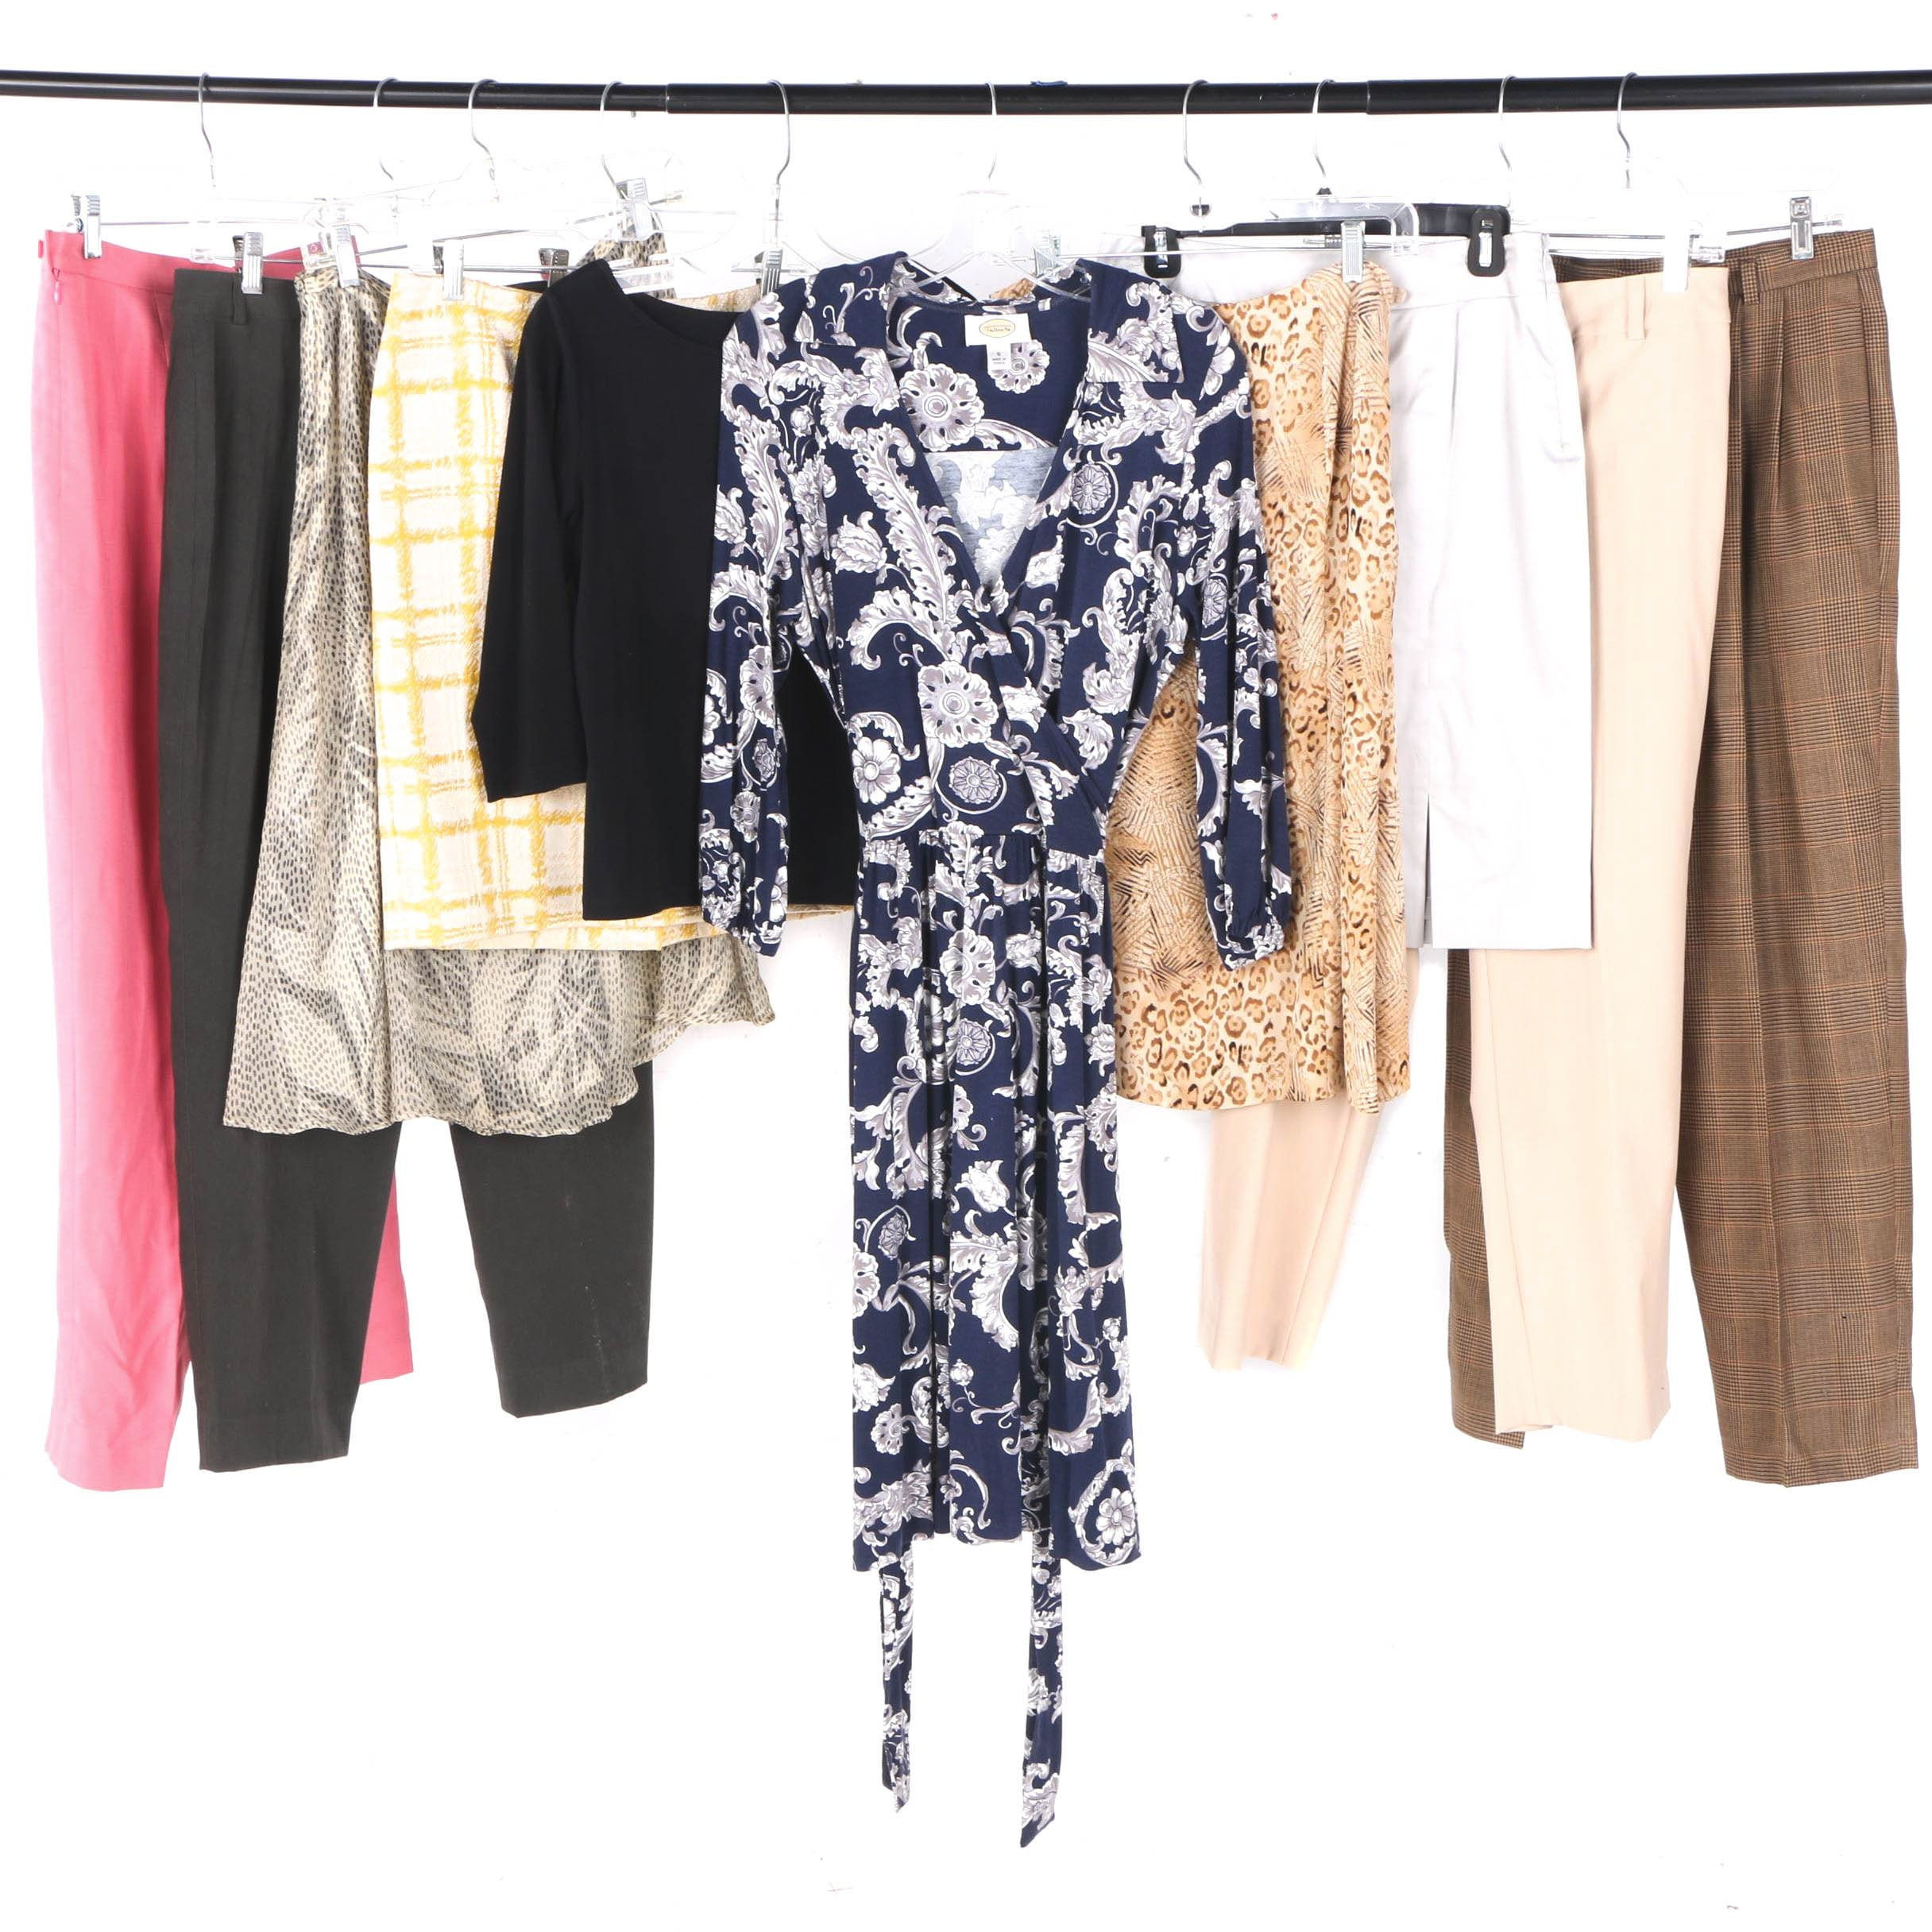 Talbots Dress and Separates Including Petites